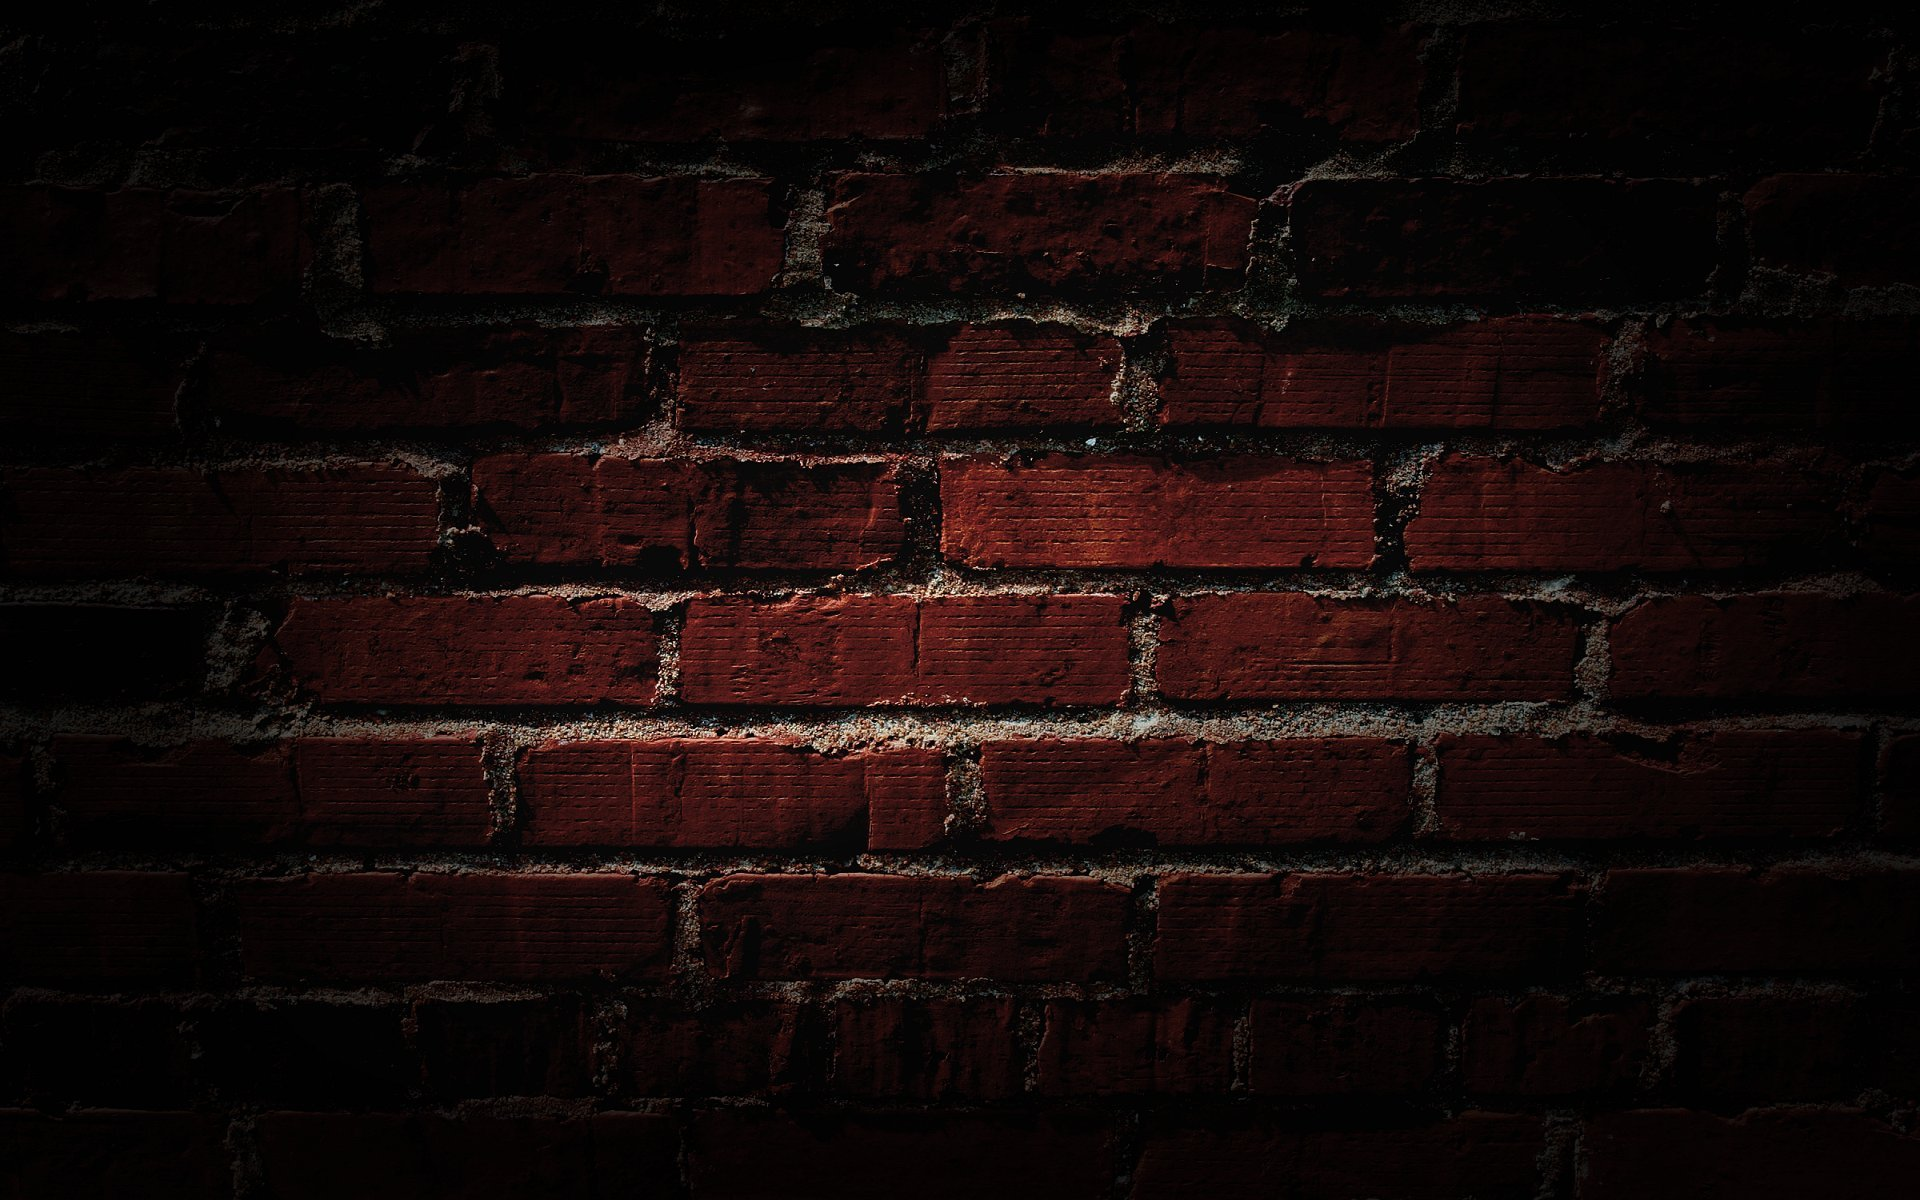 Fondos De Pared: Background Images - Wallpaper Abyss